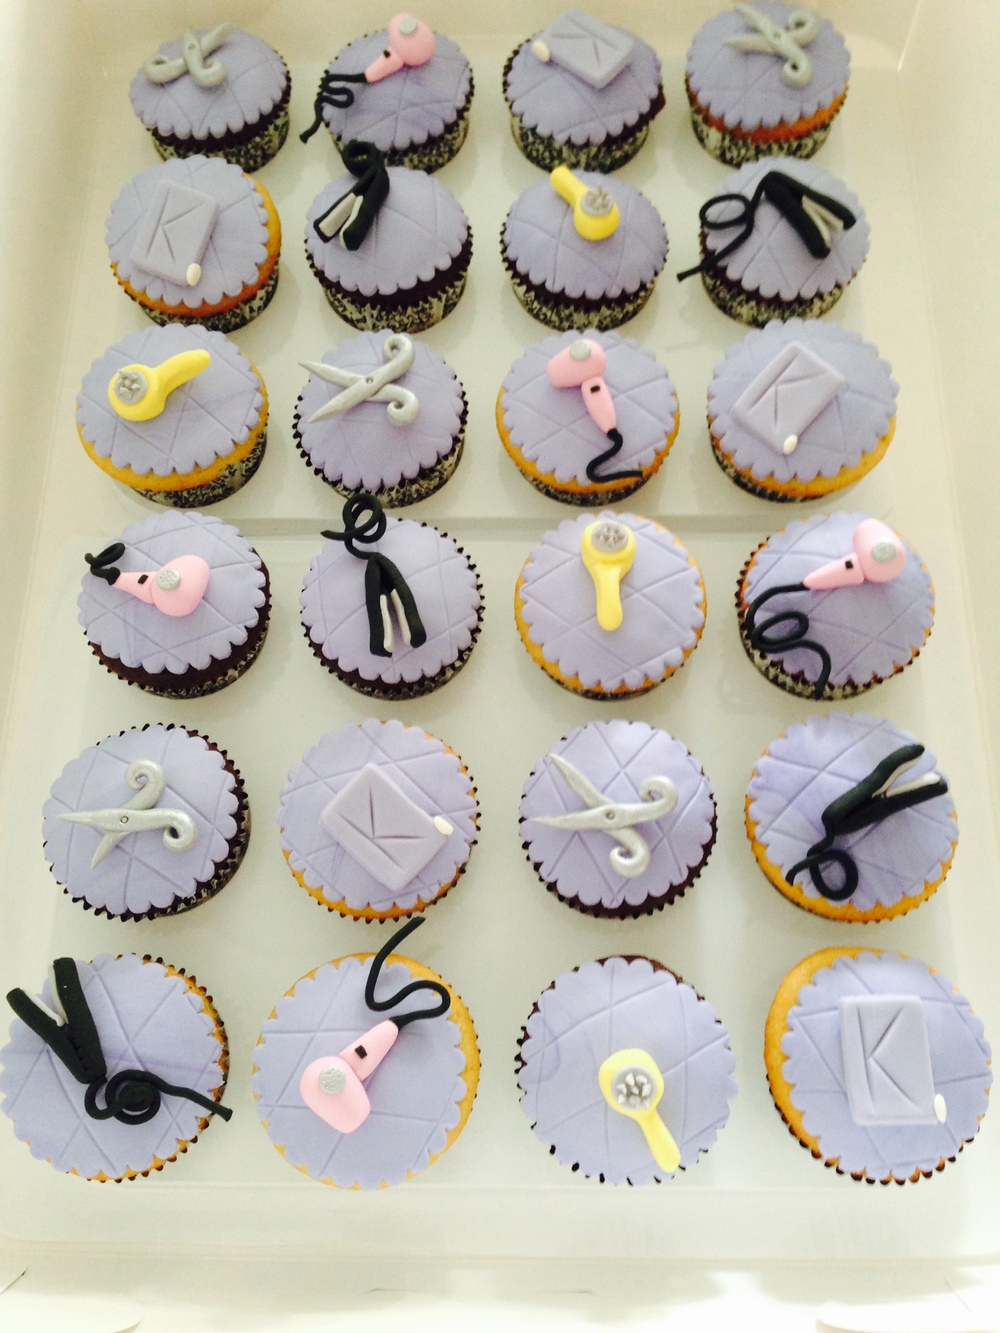 Salon Themed Cupcakes